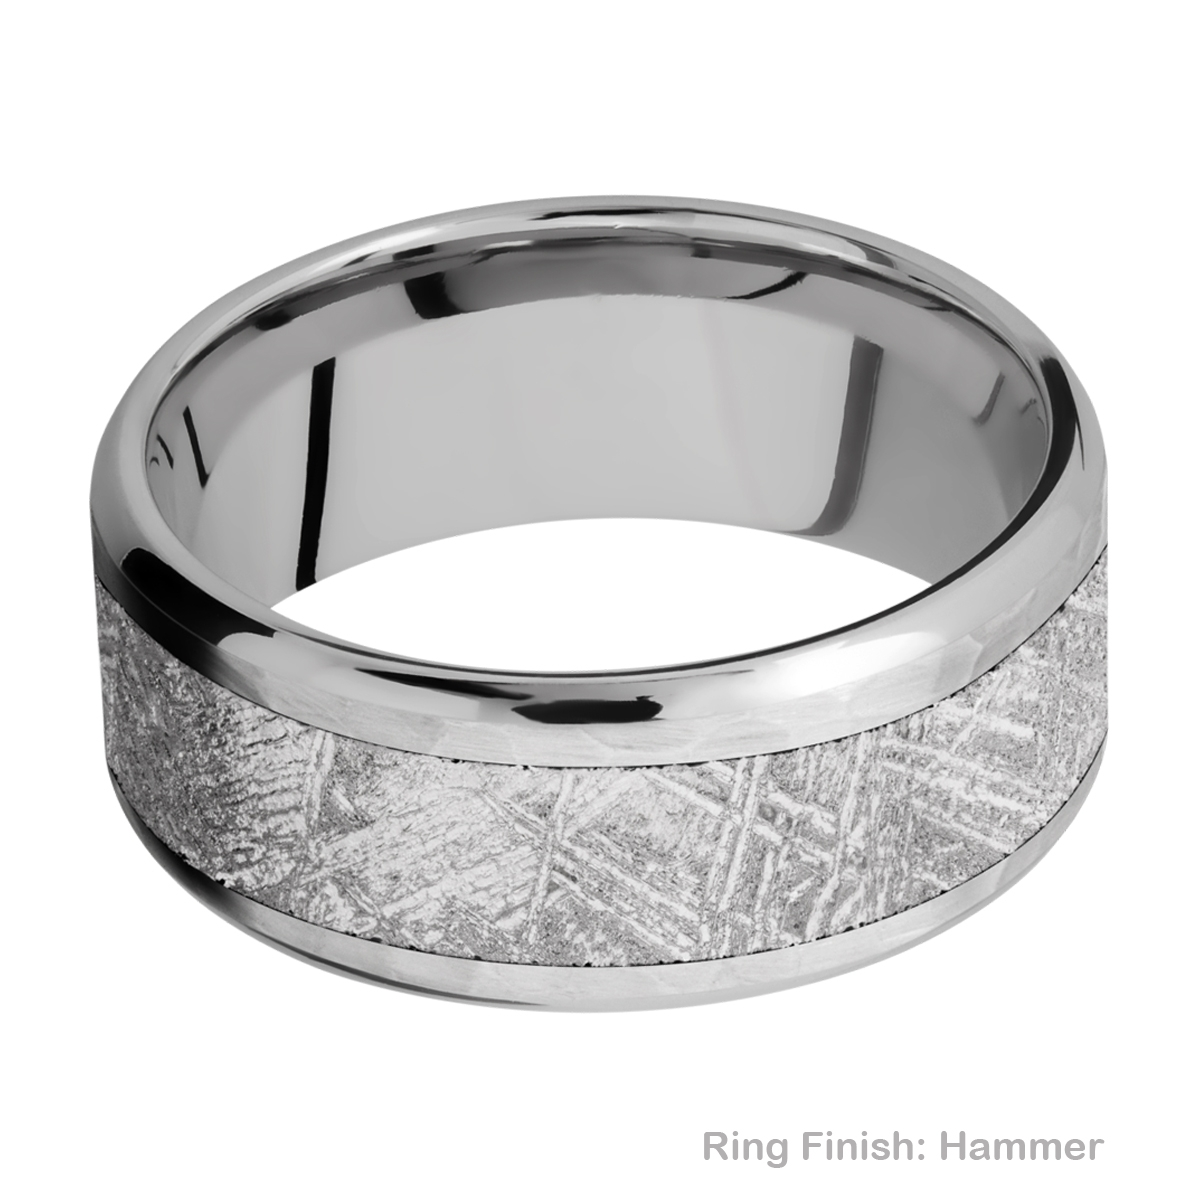 Lashbrook 9B16(NS)/METEORITE Titanium Wedding Ring or Band Alternative View 7